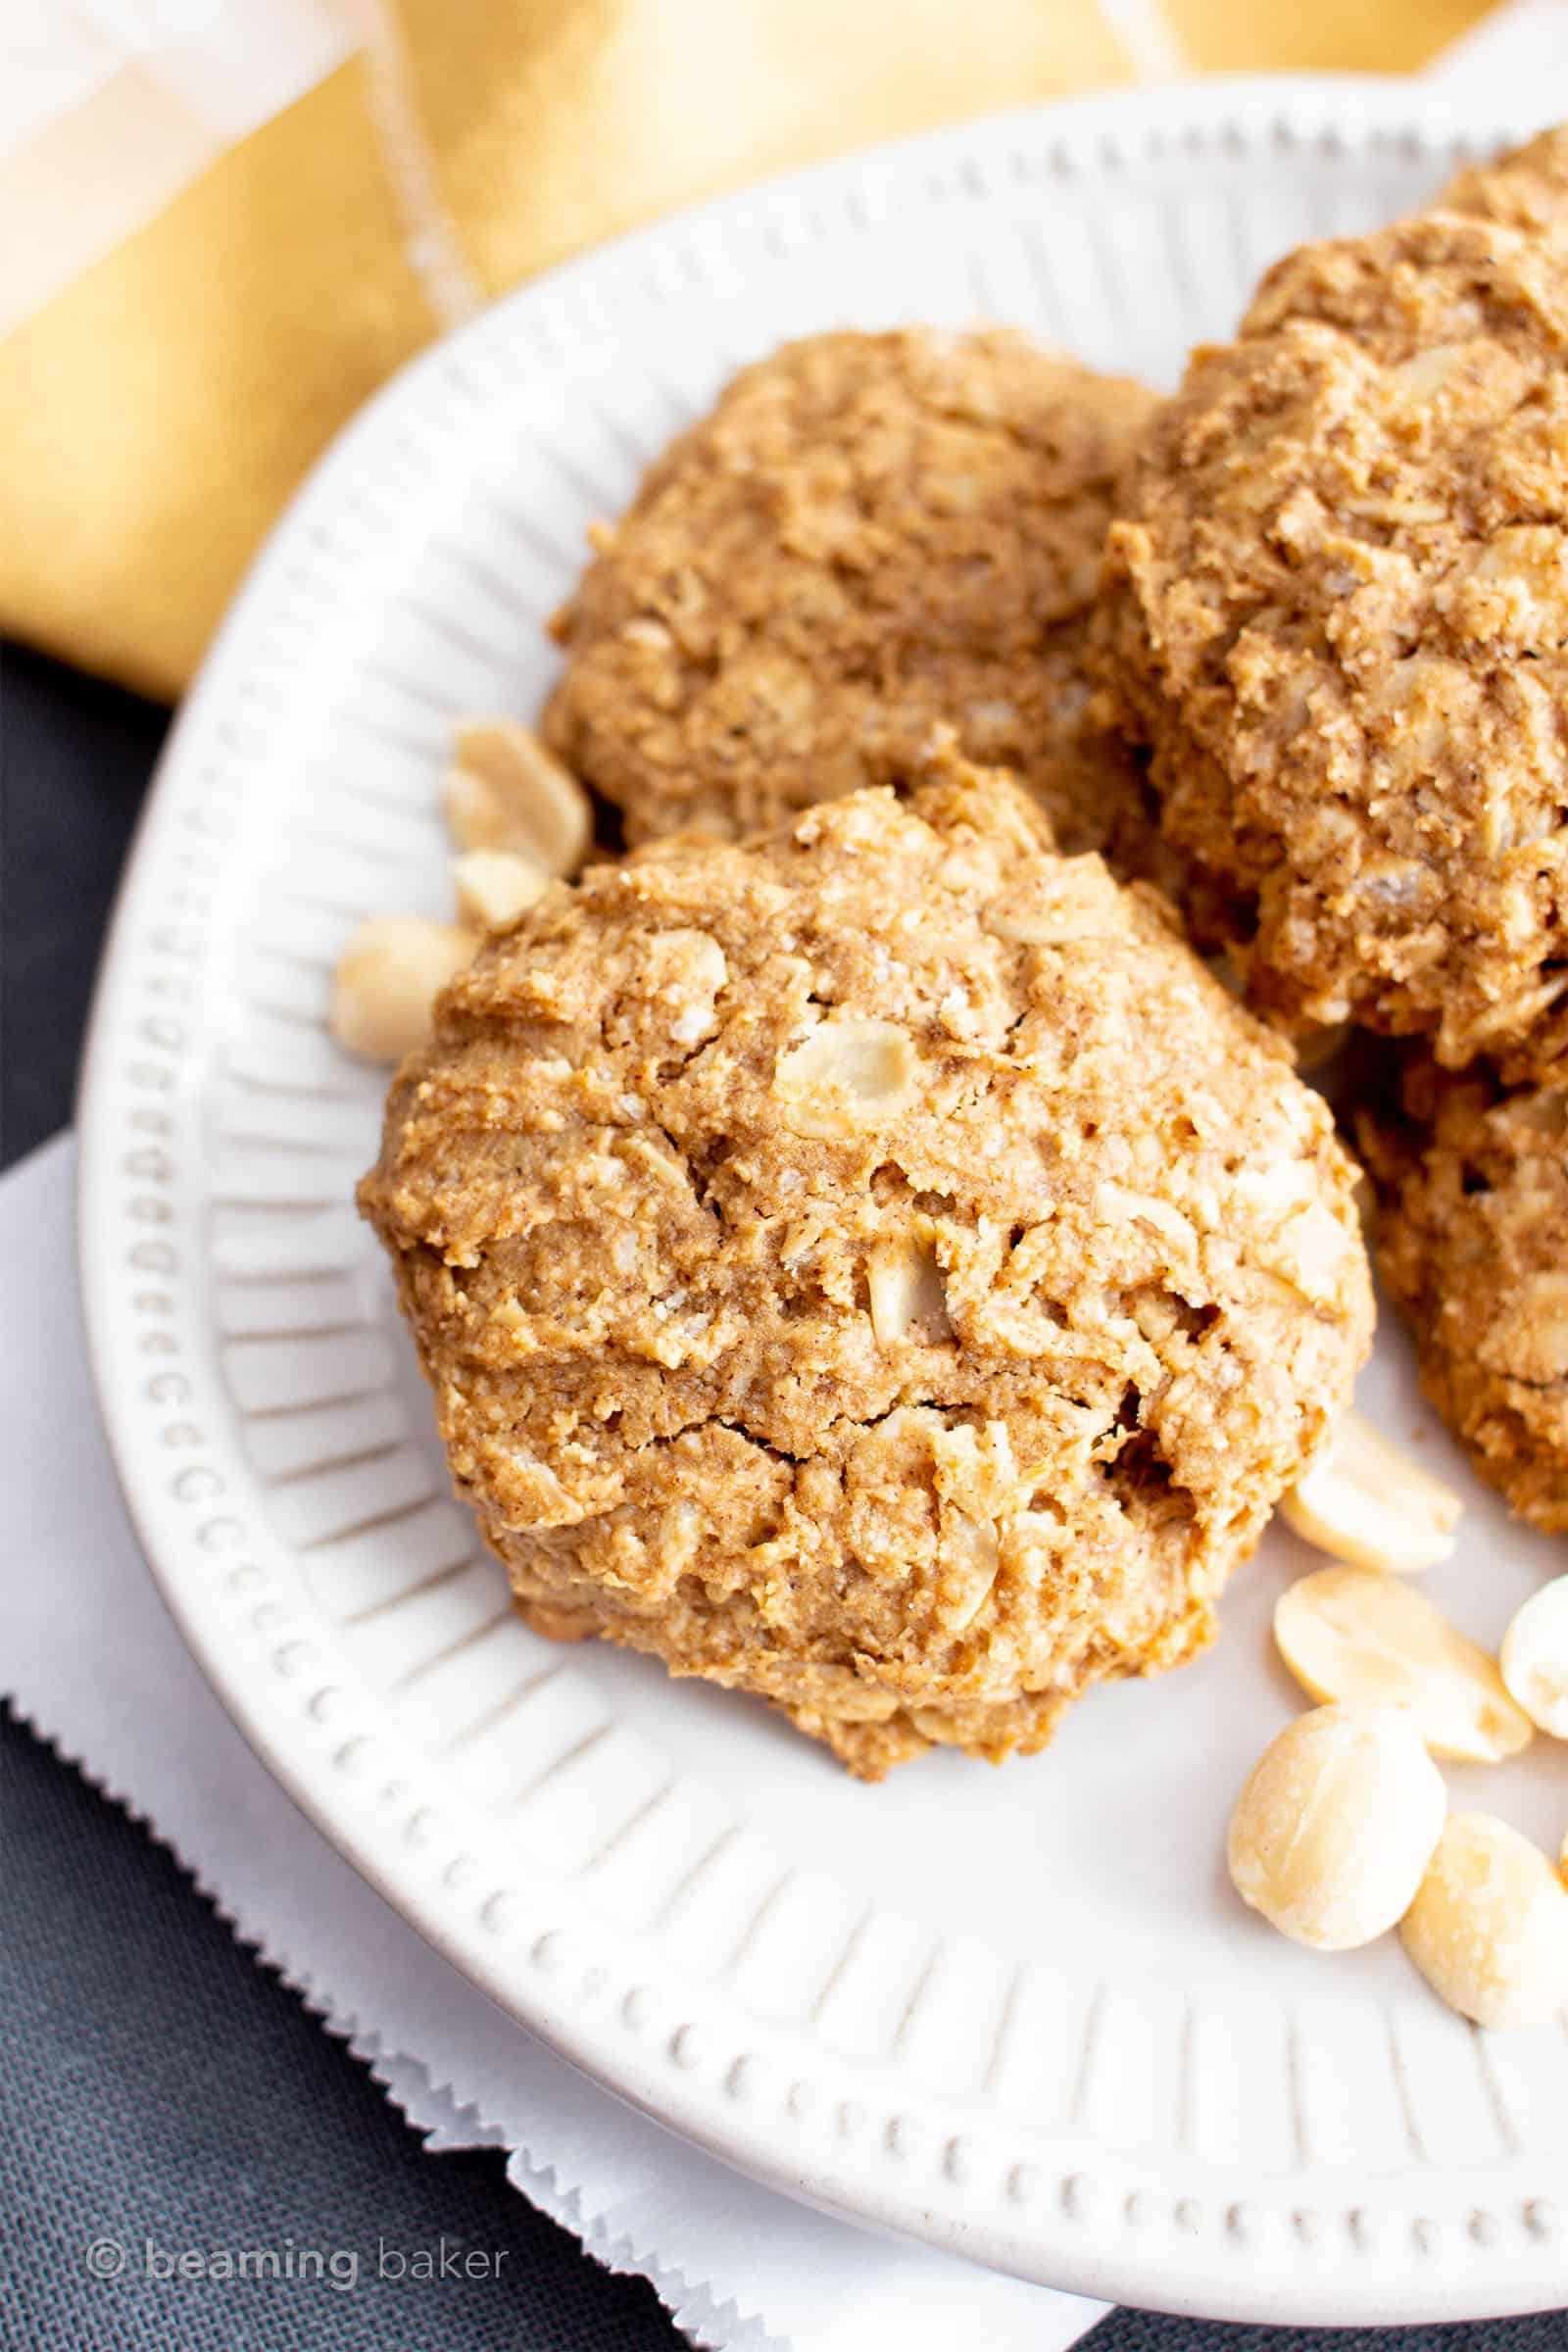 Oil-Free Peanut Butter Oatmeal Breakfast Cookies (V, GF): chewy 'n healthy breakfast cookies bursting with peanut butter flavor and packed with nutritious ingredients! #Vegan #GlutenFree #BreakfastCookies #BeamingBaker #GlutenFreeVegan #OilFree #PeanutButter #Oatmeal #VeganCookies   Recipe at BeamingBaker.com